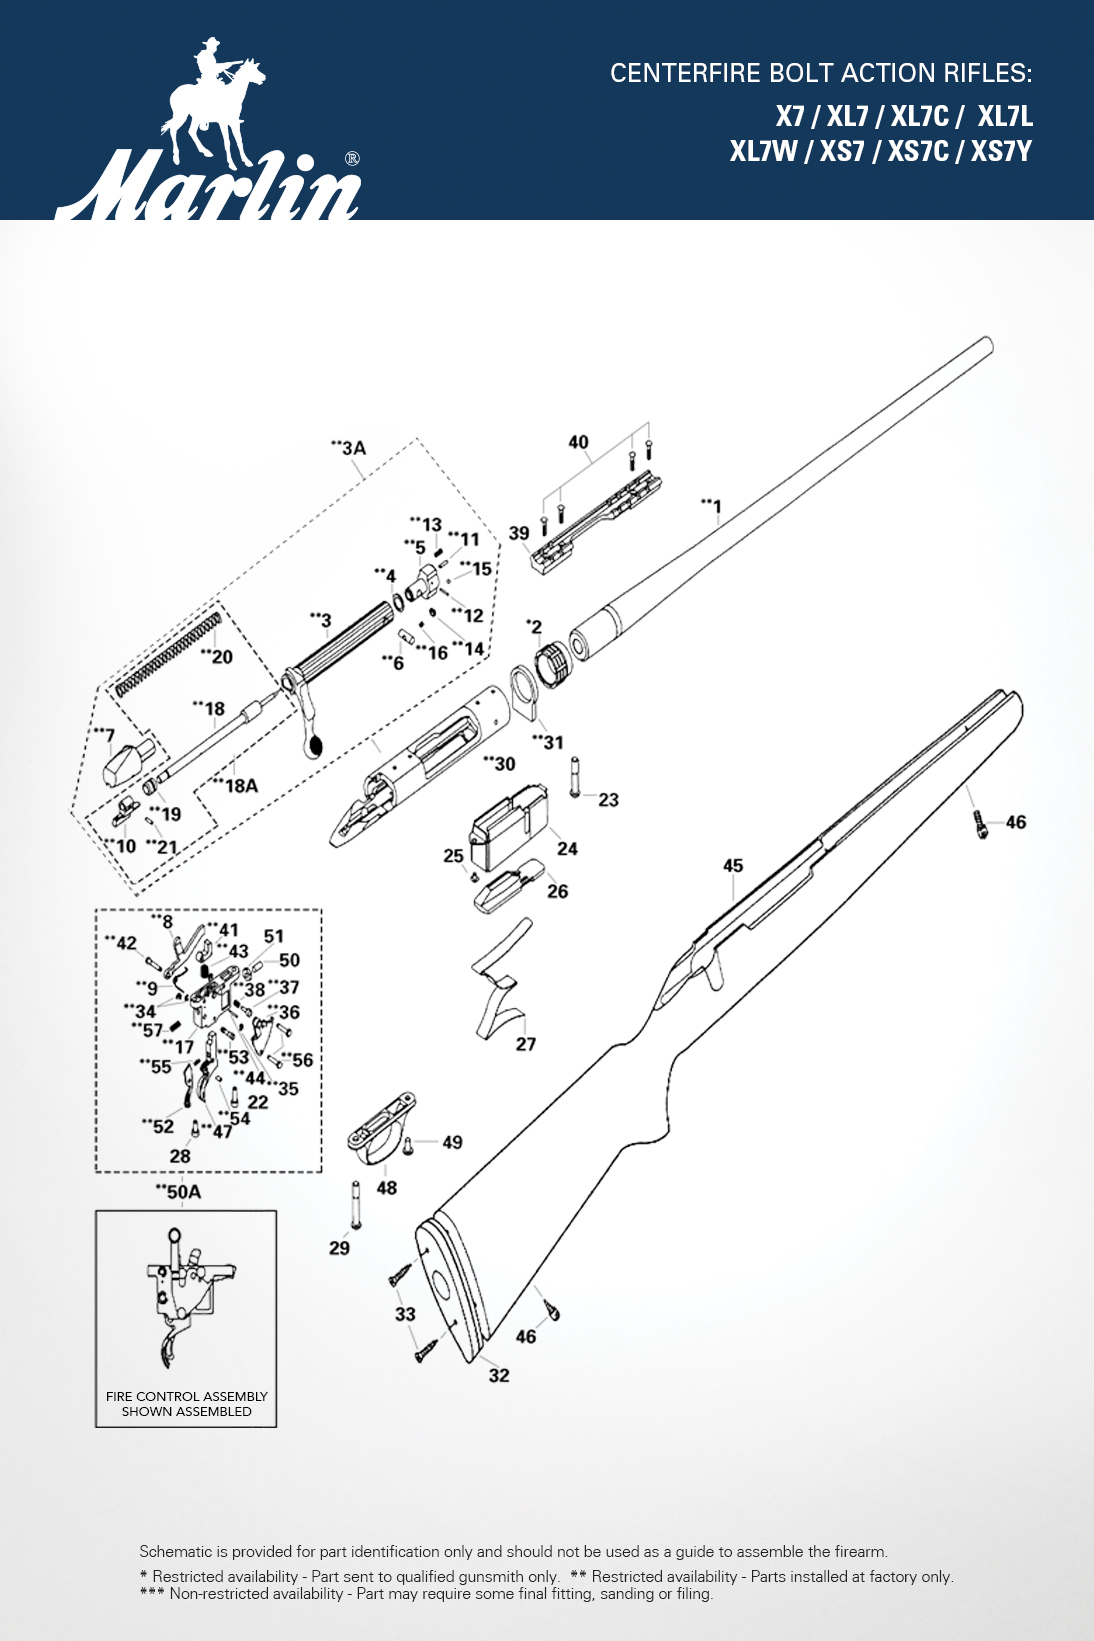 Stock Replacement Parts : Model centerfire rifles marlin replacement parts